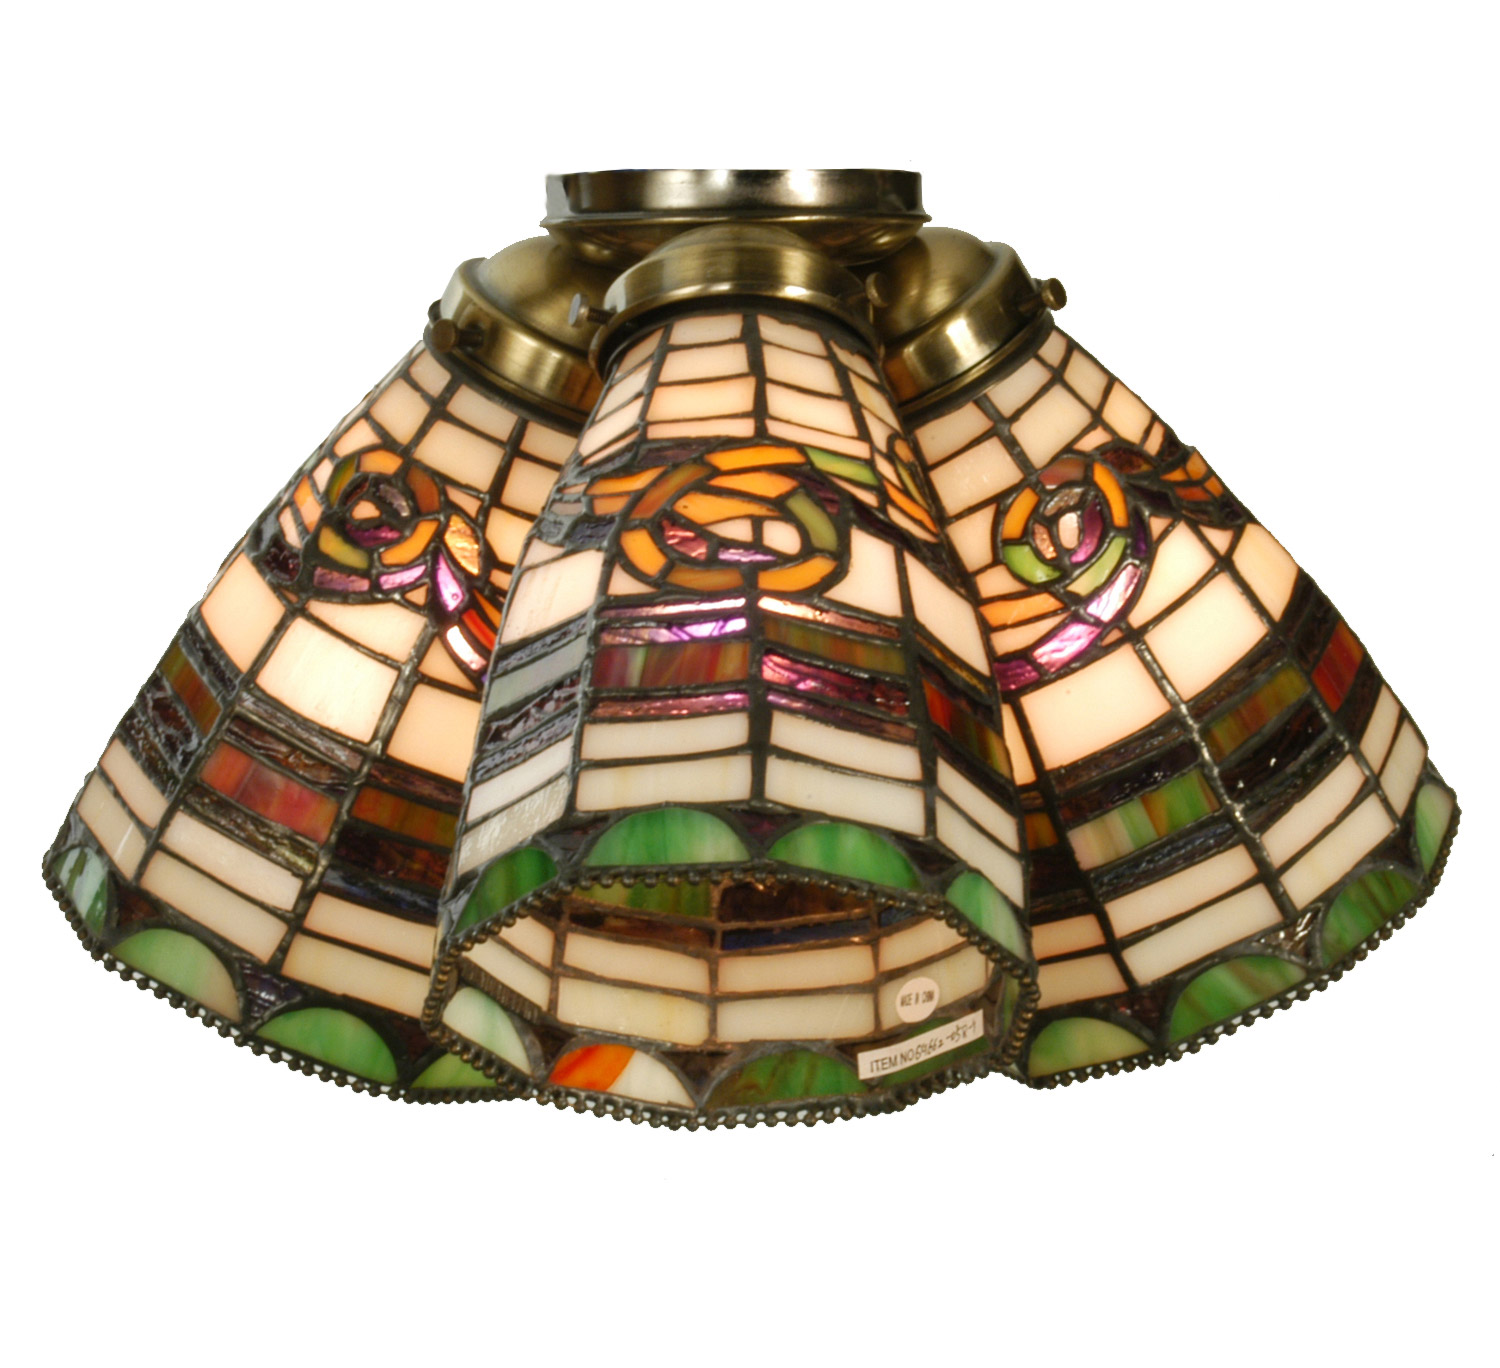 oil shades glass vintage ceilings fan cloche ceiling rubbed products light indoor of outdoor style bronze